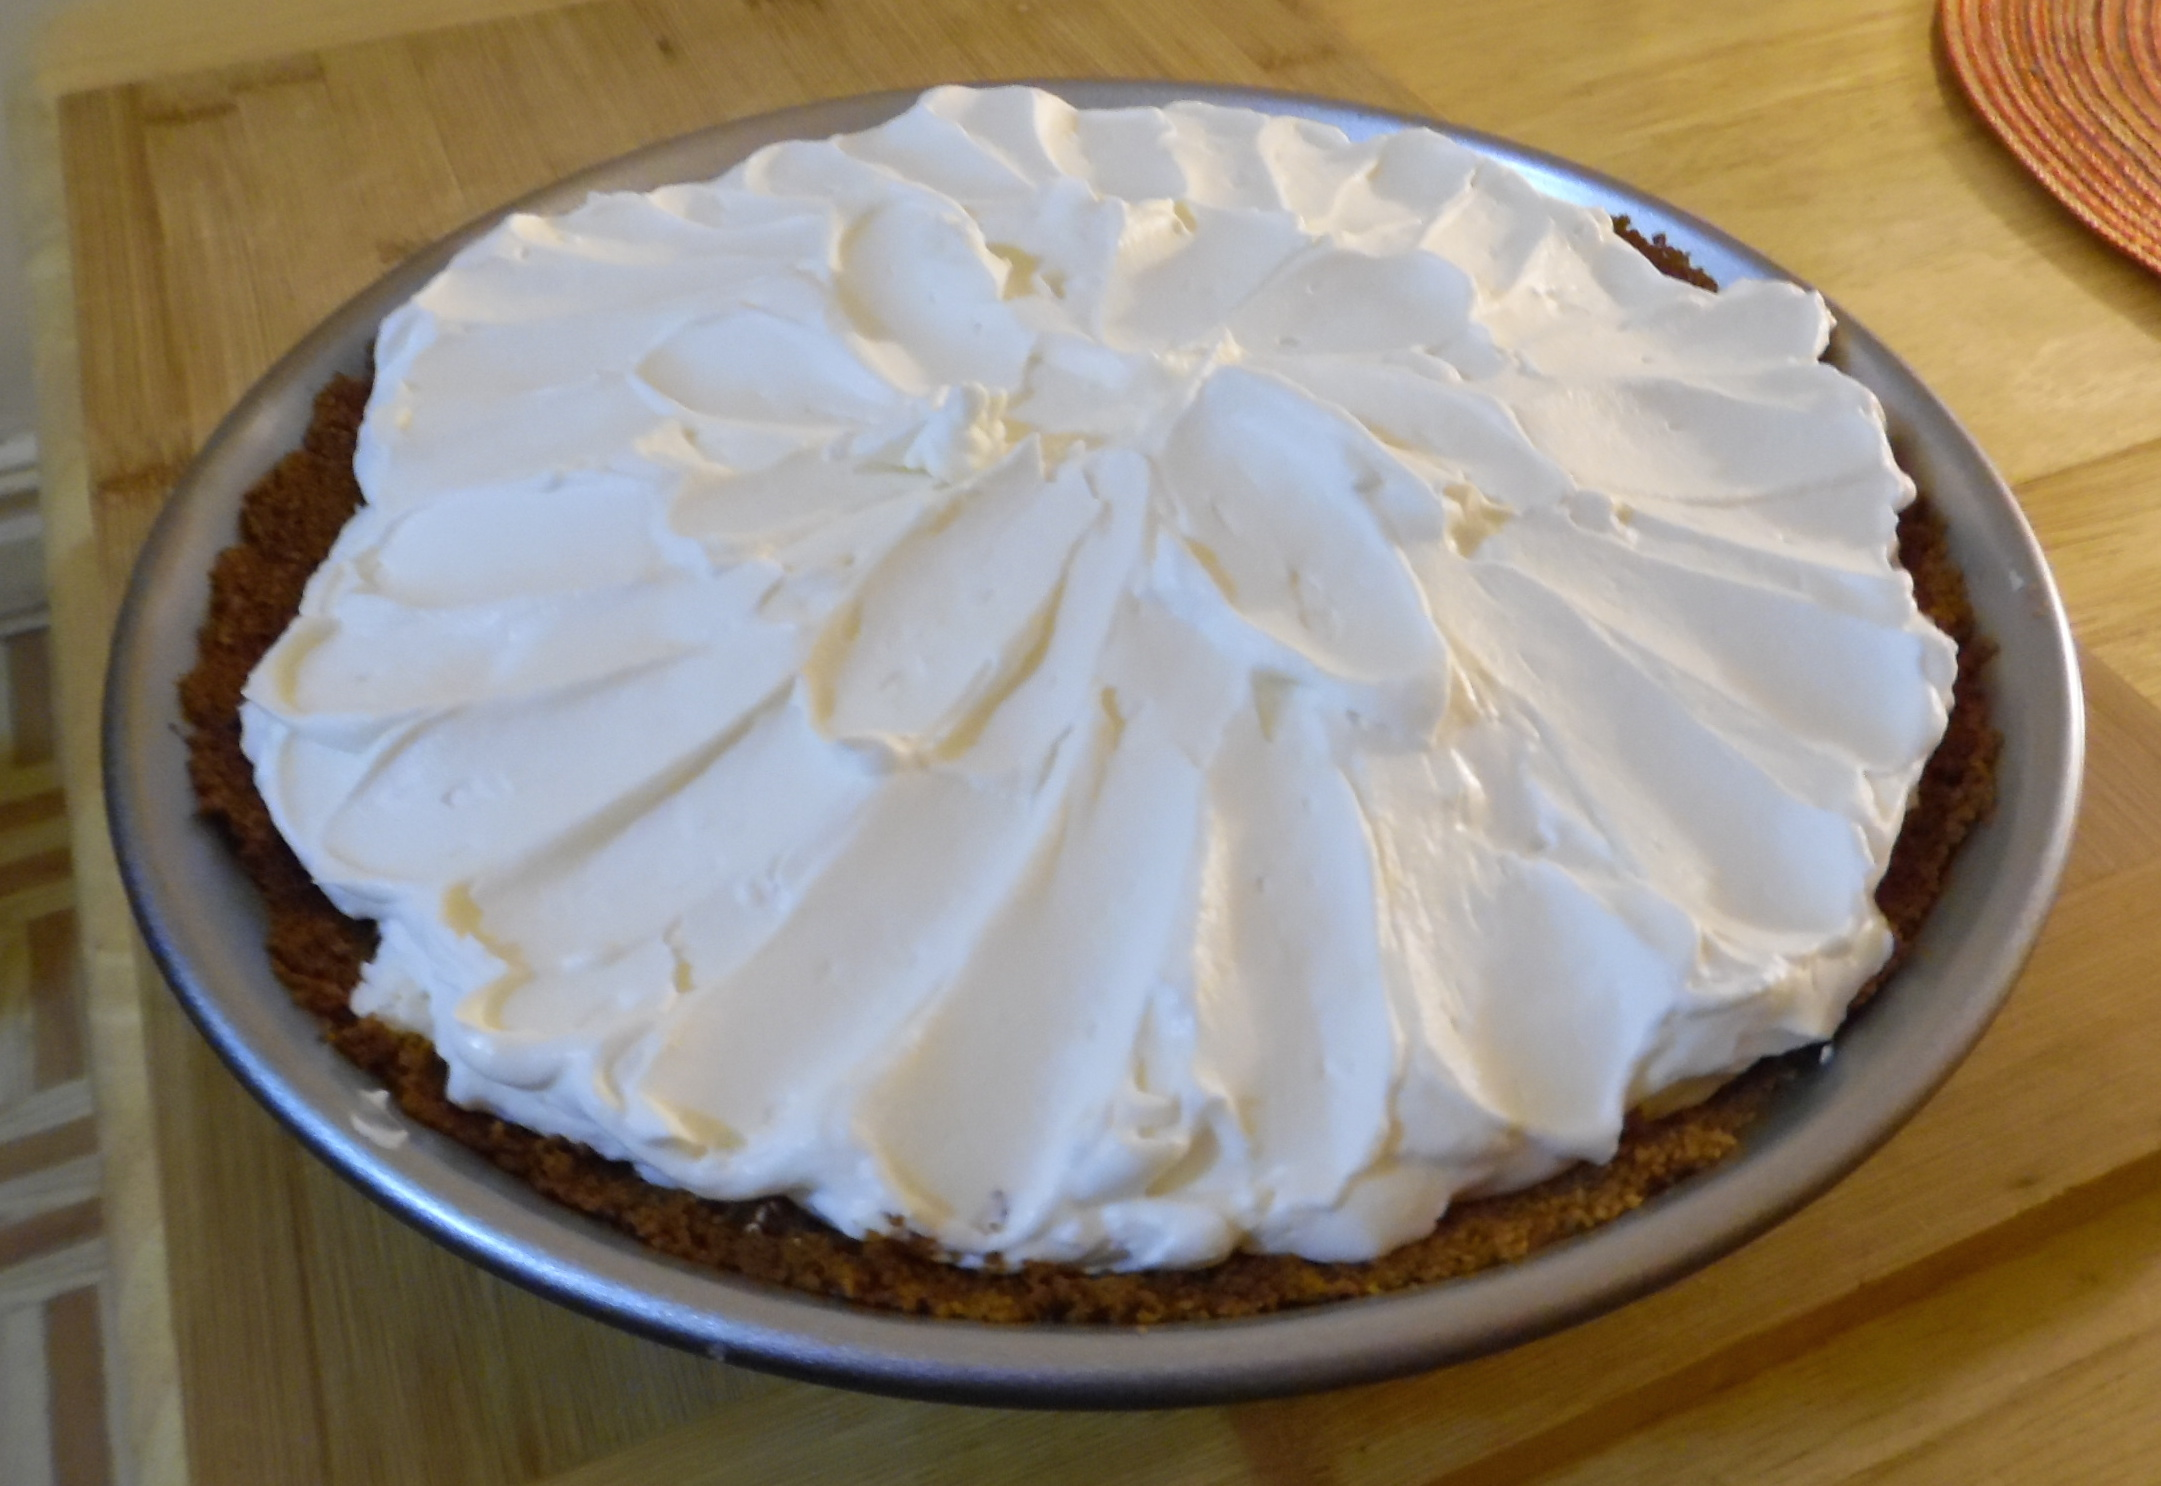 Topping spread over filled and cooled pie.